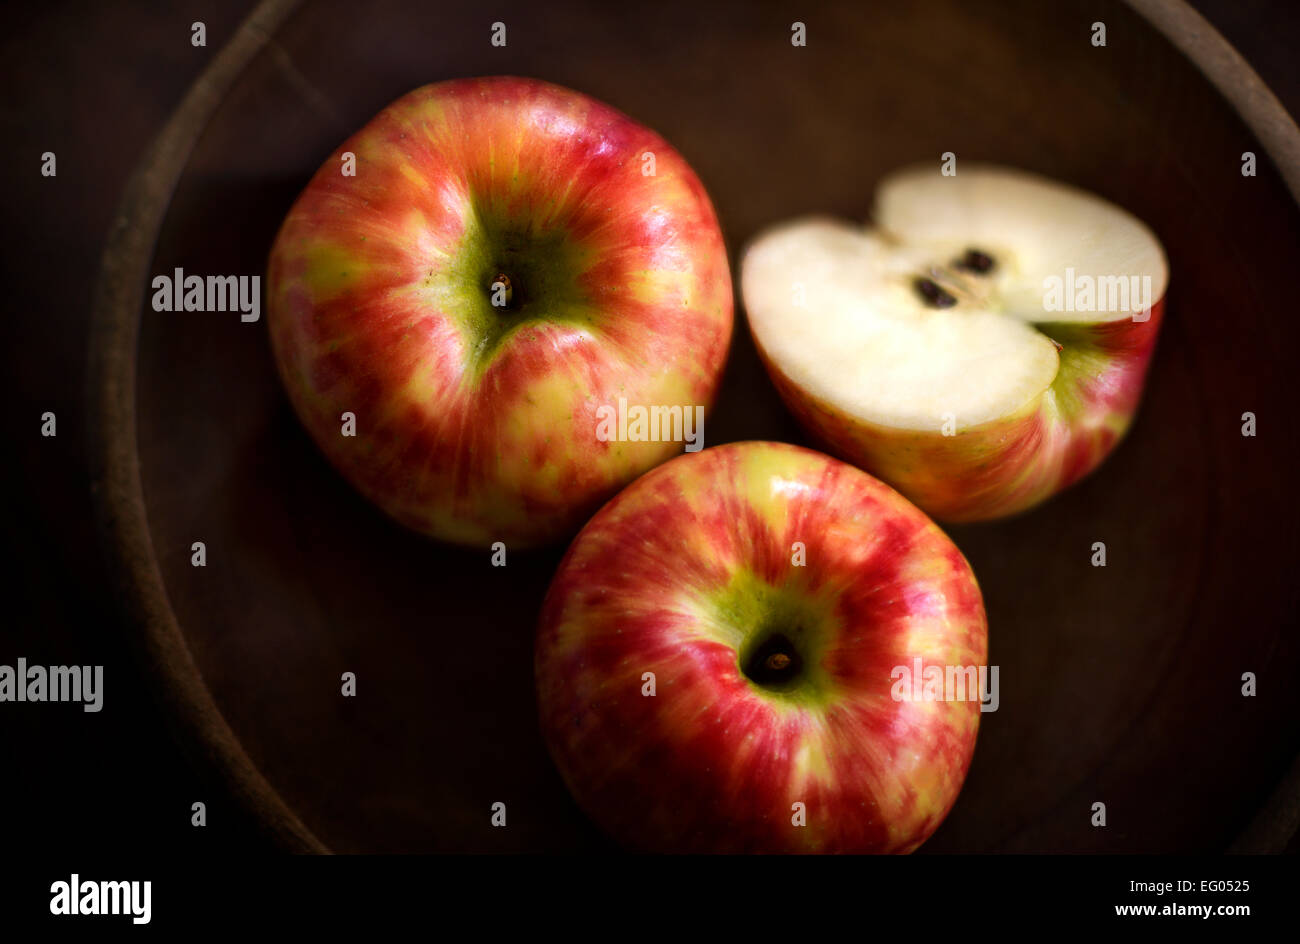 Honeycrisp apples in a rustic wooden bowl. - Stock Image